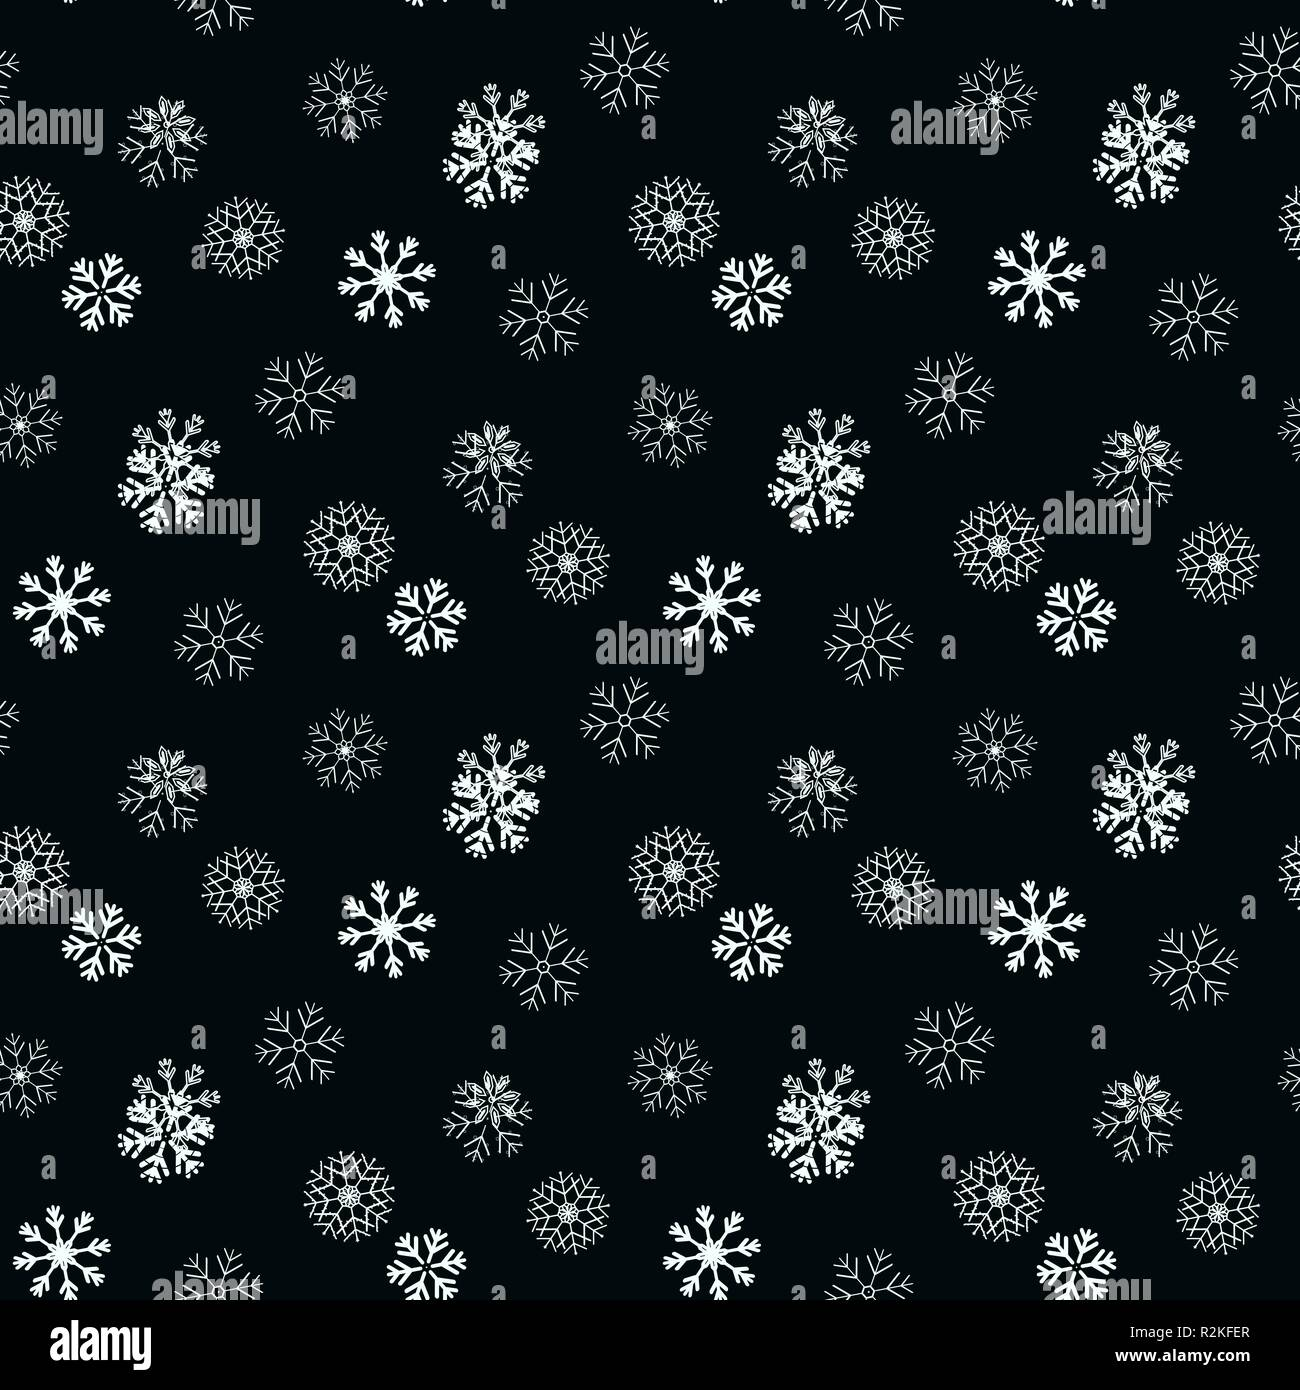 white Snowflake on black simple seamless pattern. Abstract